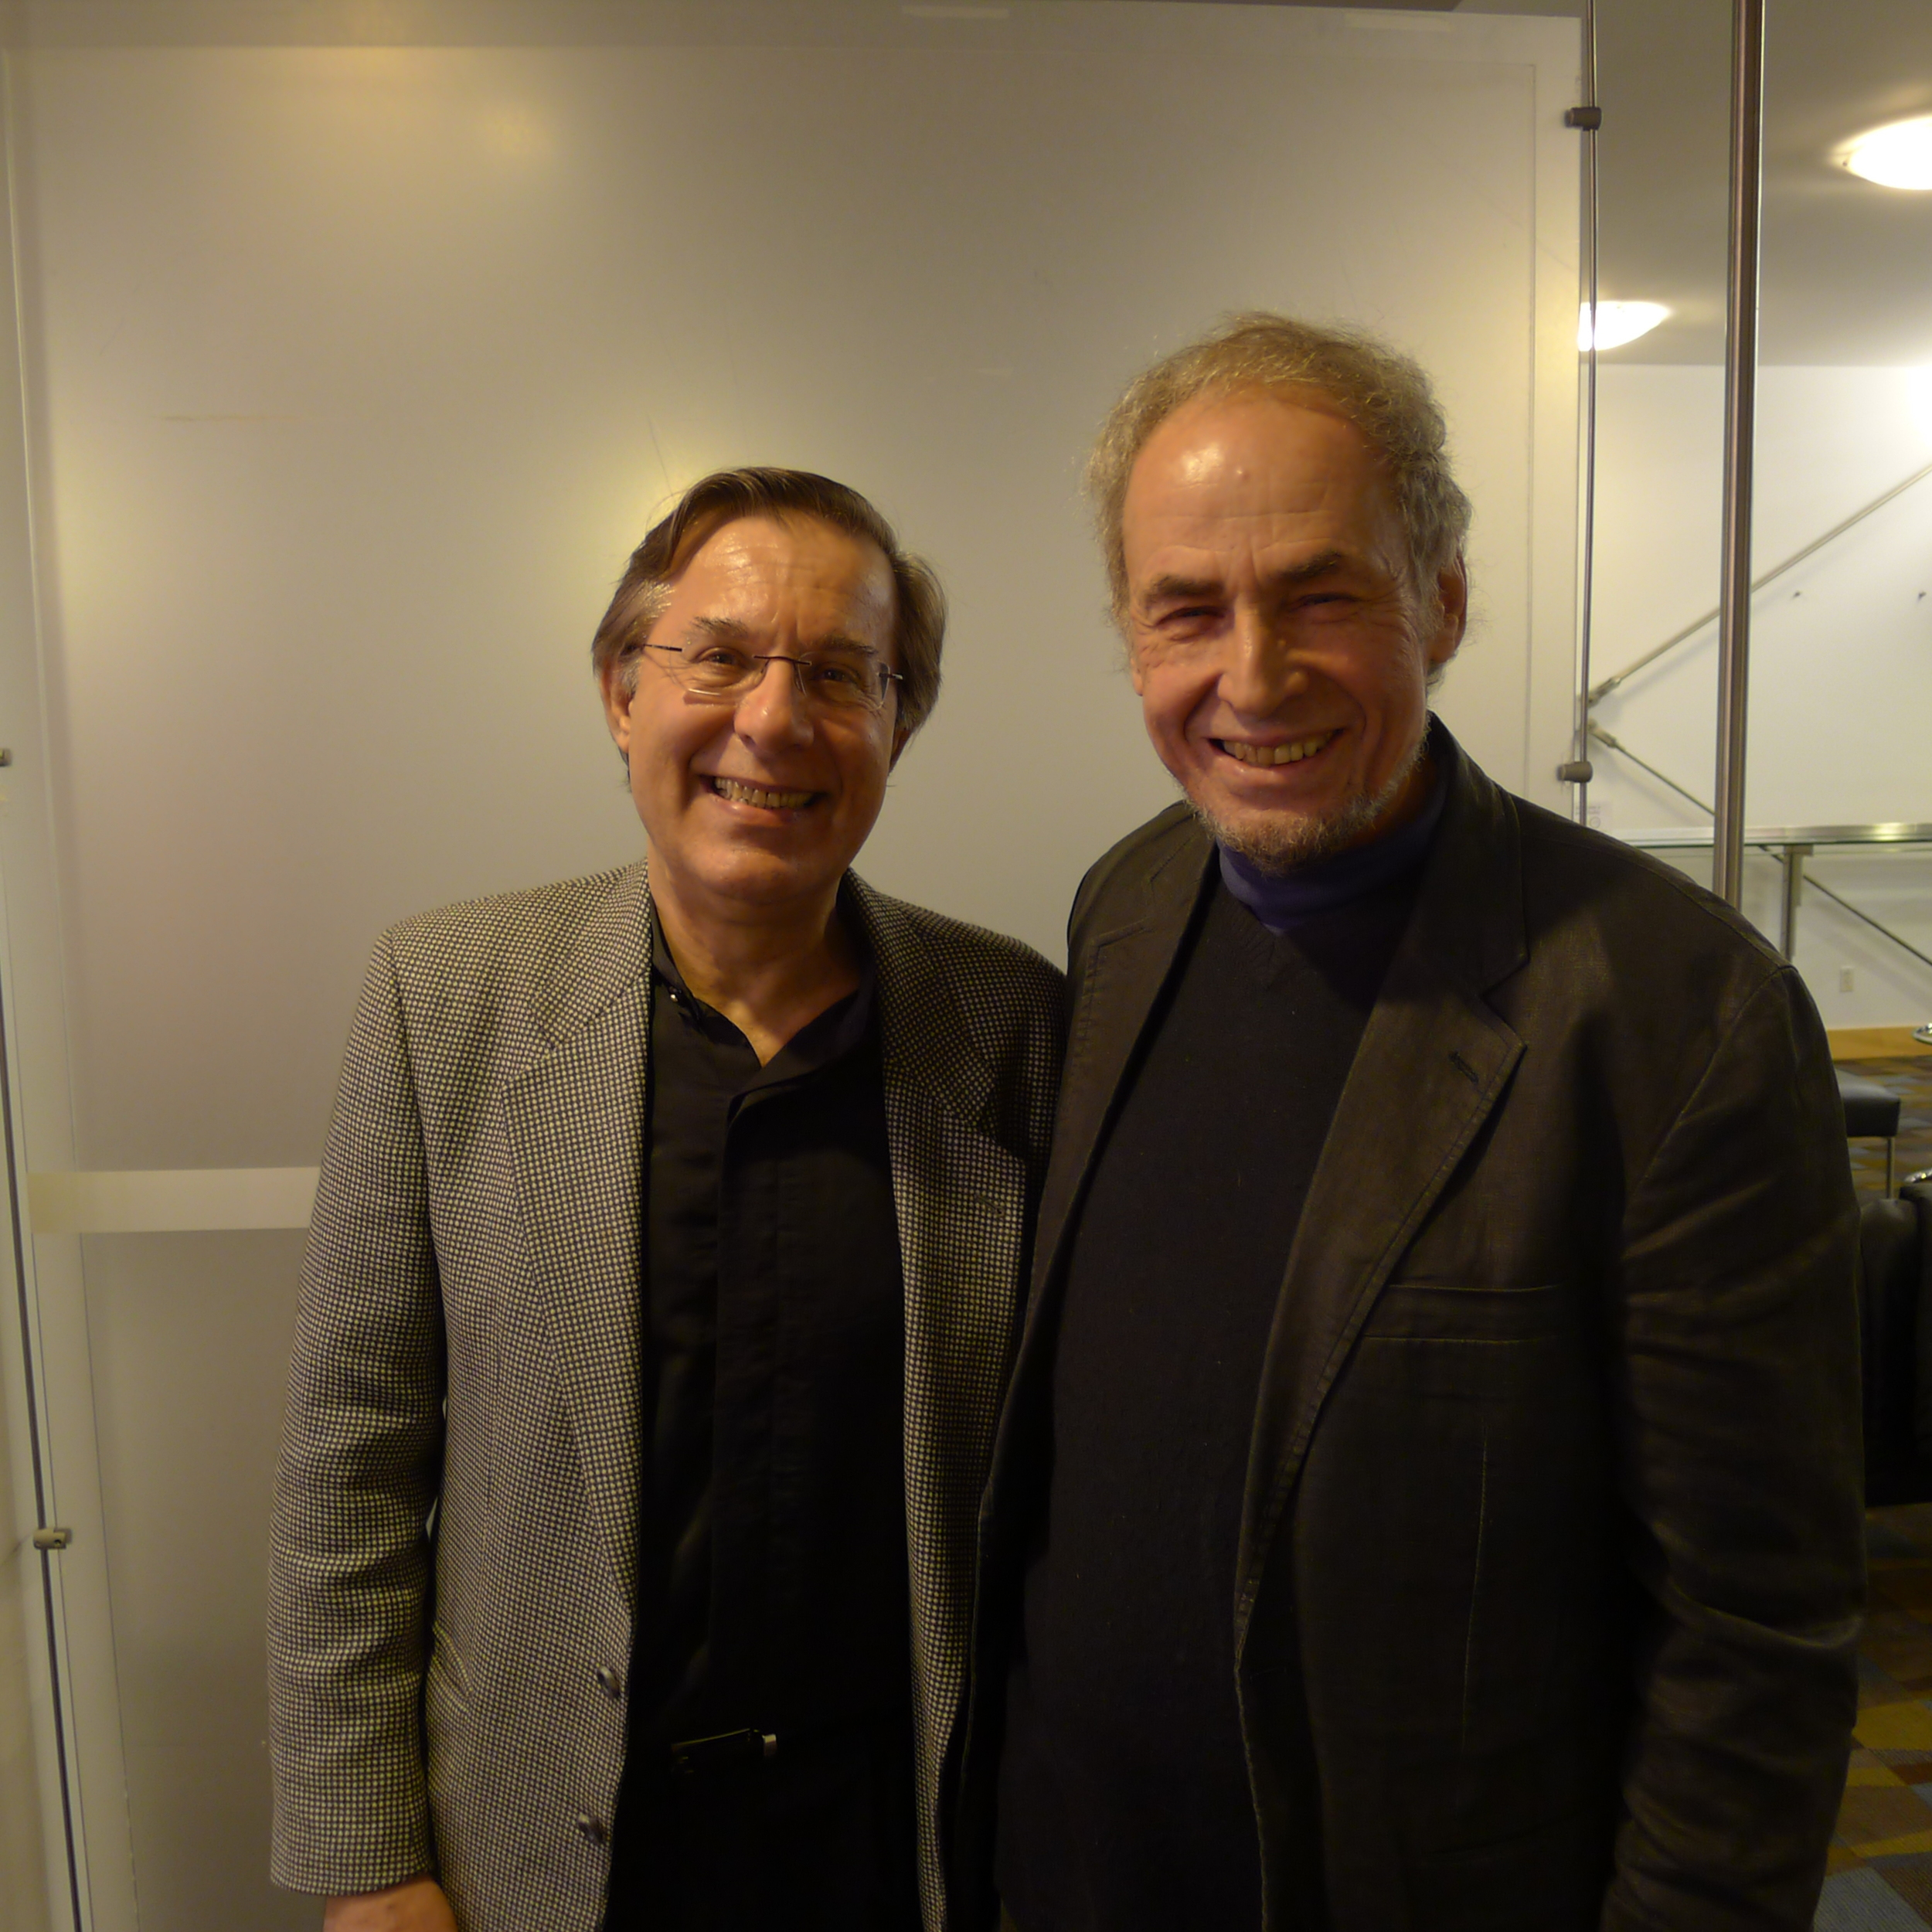 With Dr. Newman.